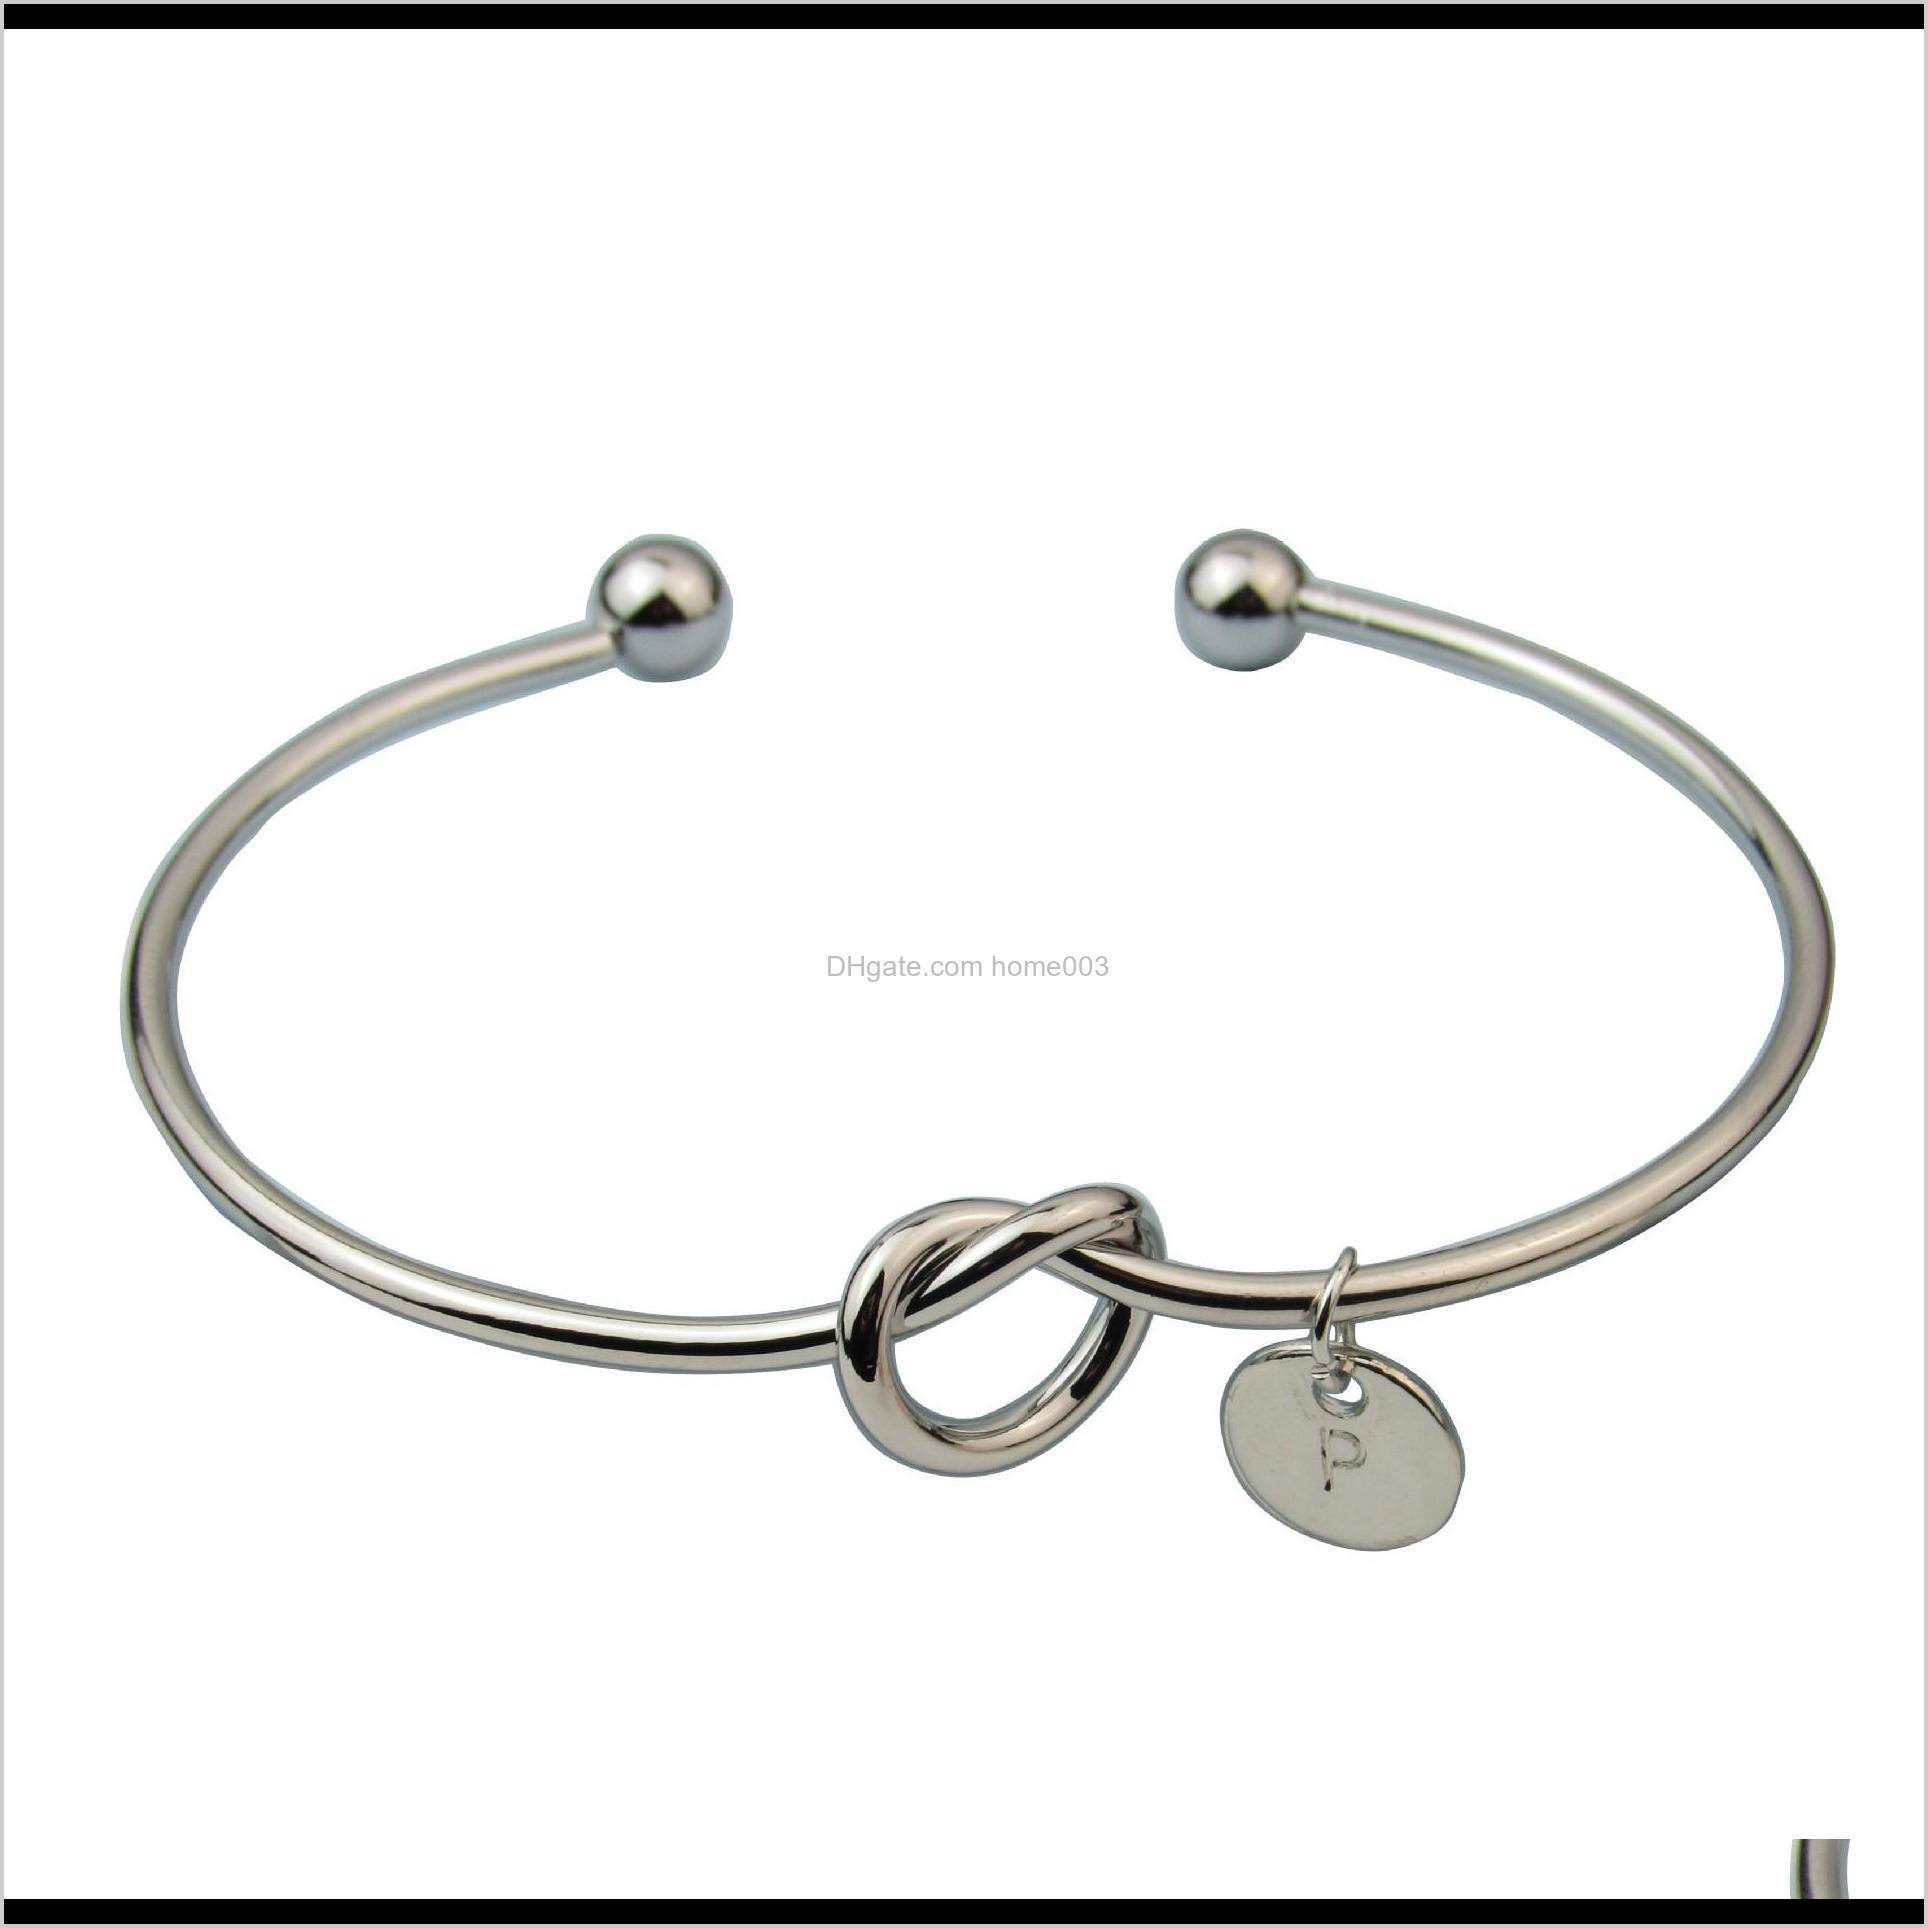 a-z 26 letters open bangles jewelry fashion women gir alloy knot heart pendant bracelets wholesale brief gold silver rose gold color